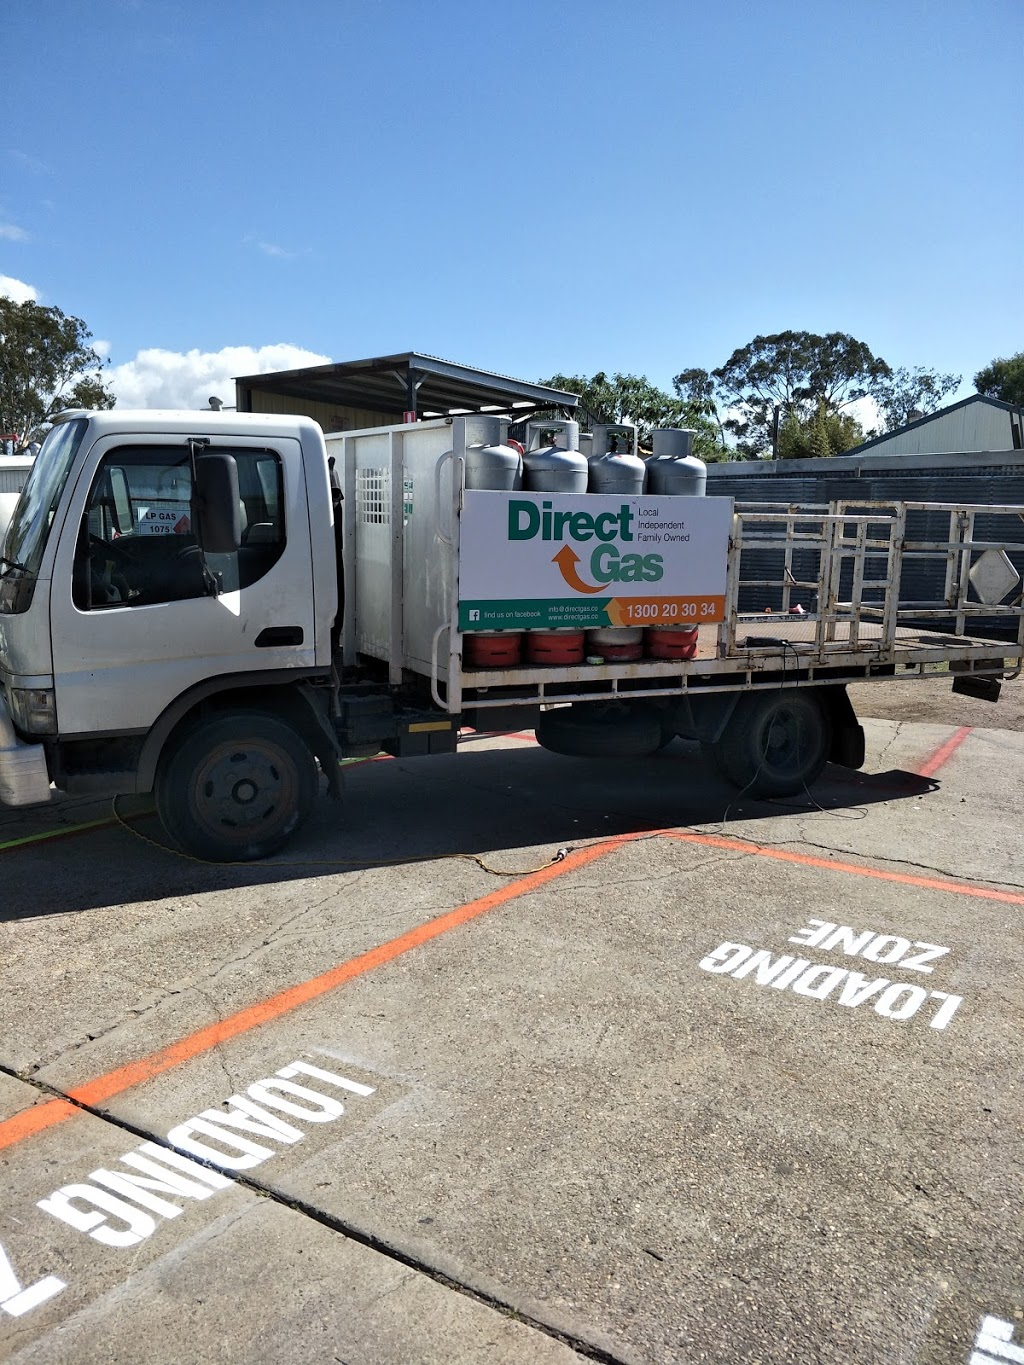 Direct Gas LPG Supply | store | 125 Connaught St, Sandgate QLD 4017, Australia | 1300203034 OR +61 1300 203 034